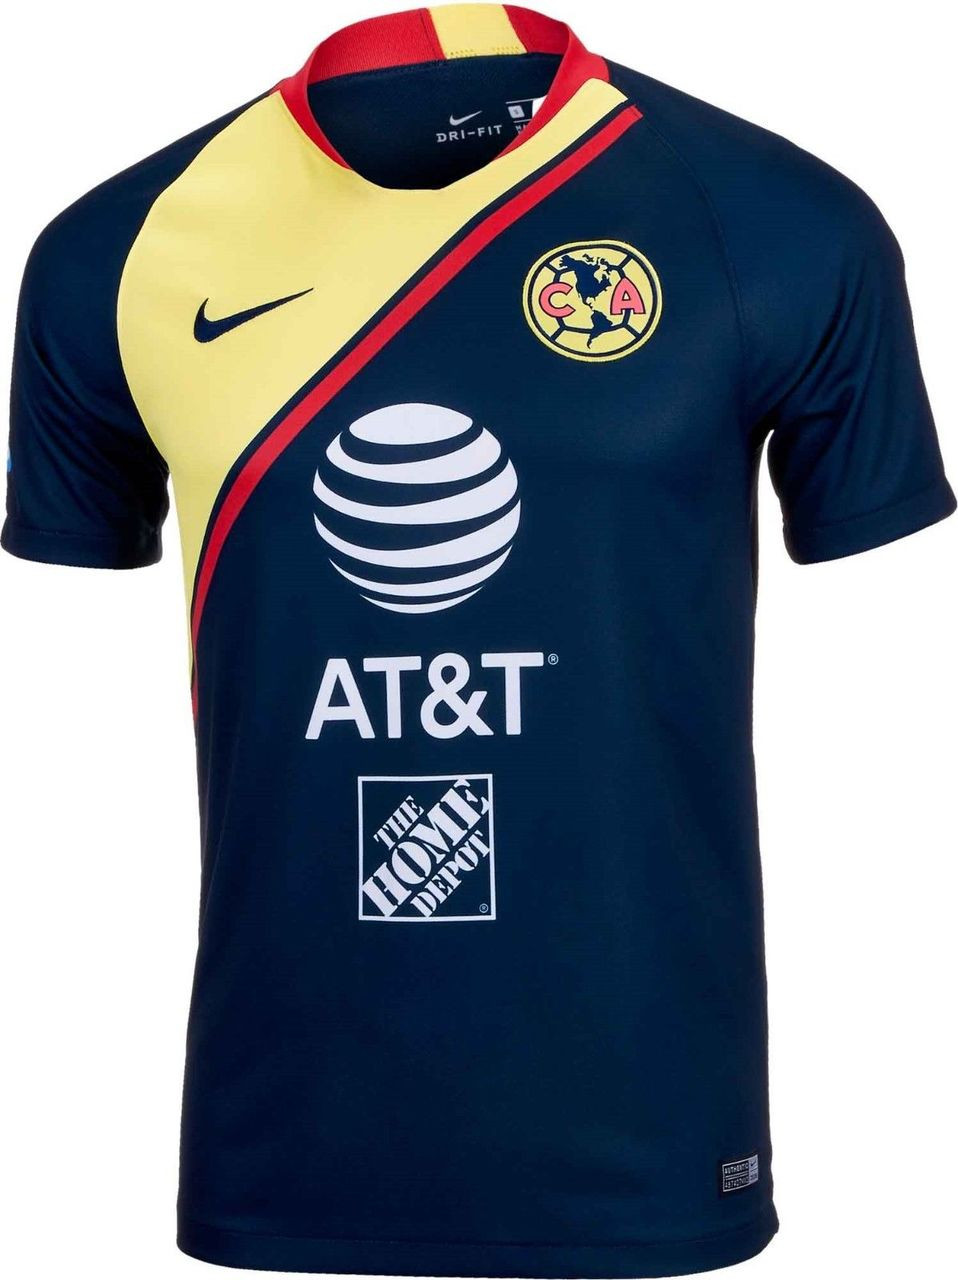 new arrivals fe3c5 ccd75 NIKE CLUB AMERICA 2019 AWAY JERSEY